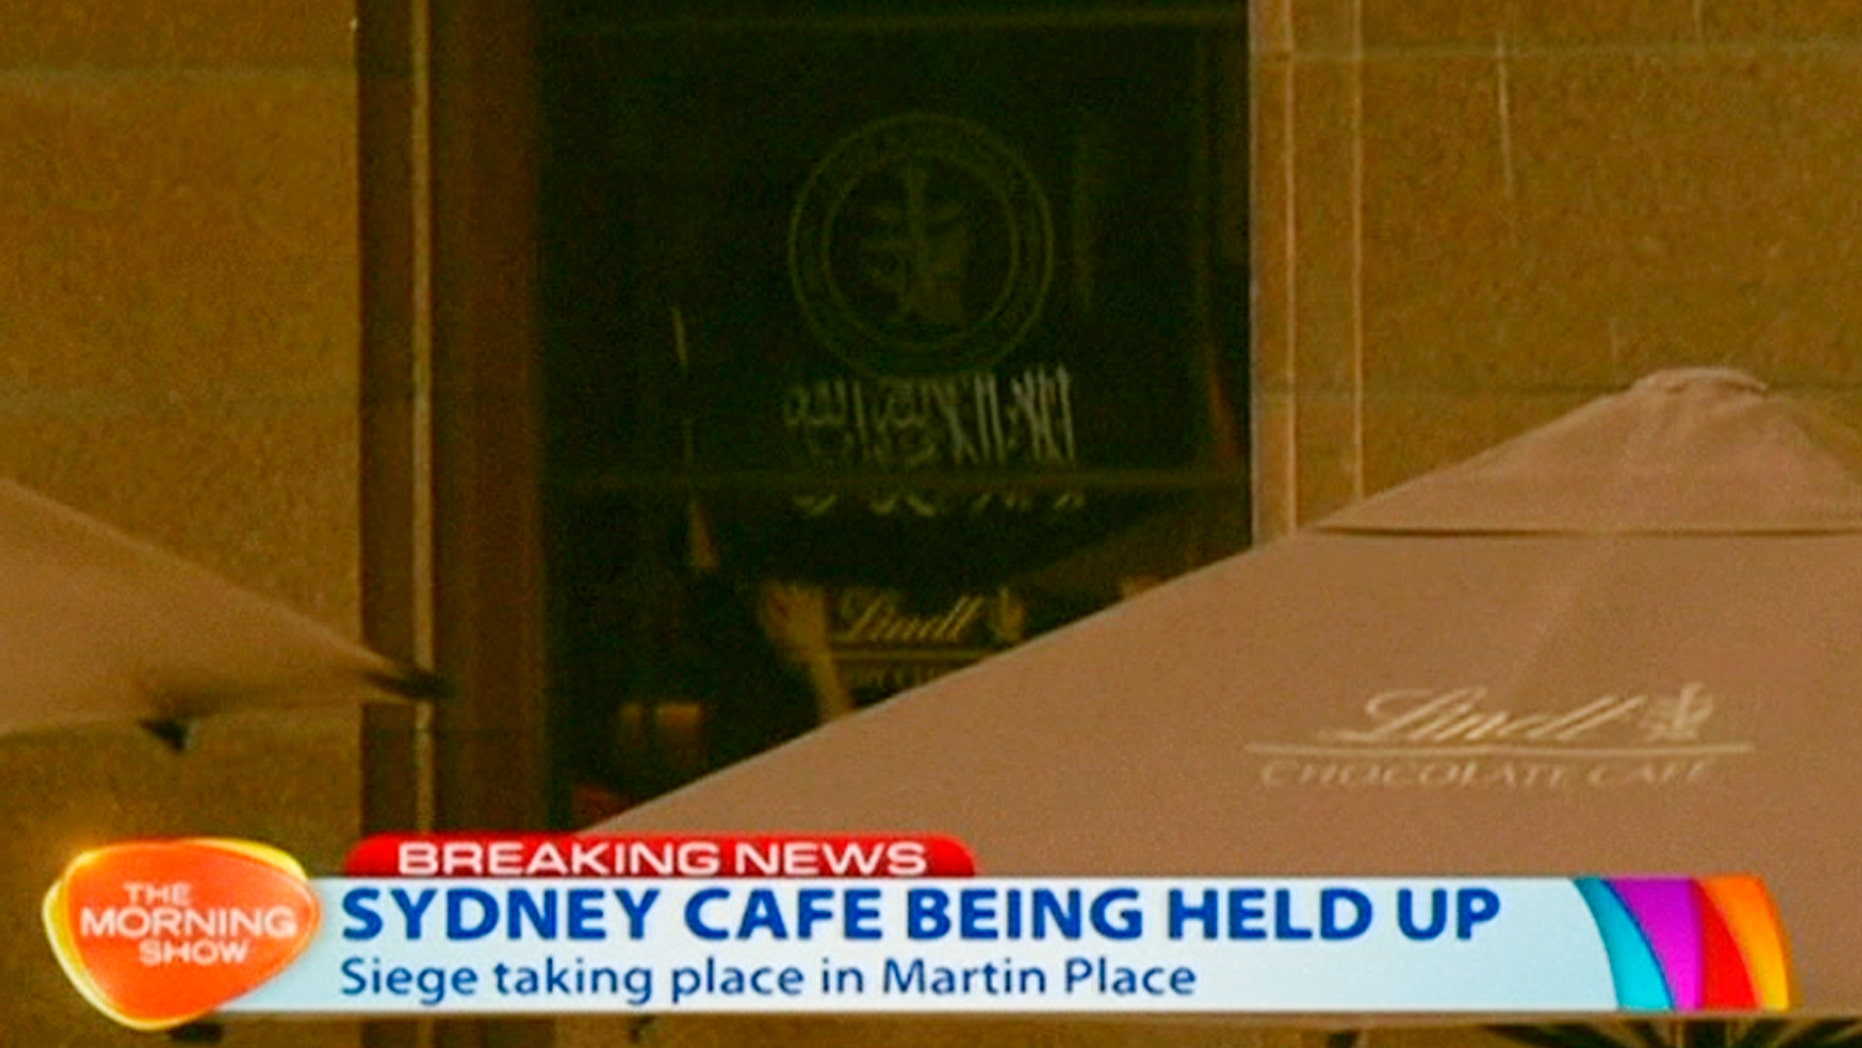 Dec. 15, 2014 - People holding up what appeared to be a black flag with white Arabic writing on it, inside a cafe in Sydney, Australia. A gunman took an unknown number of people hostage inside the downtown Sydney chocolate shop and cafe. The flag was  believed to contain an Islamic declaration of faith. (still taken from Ch.7 video)